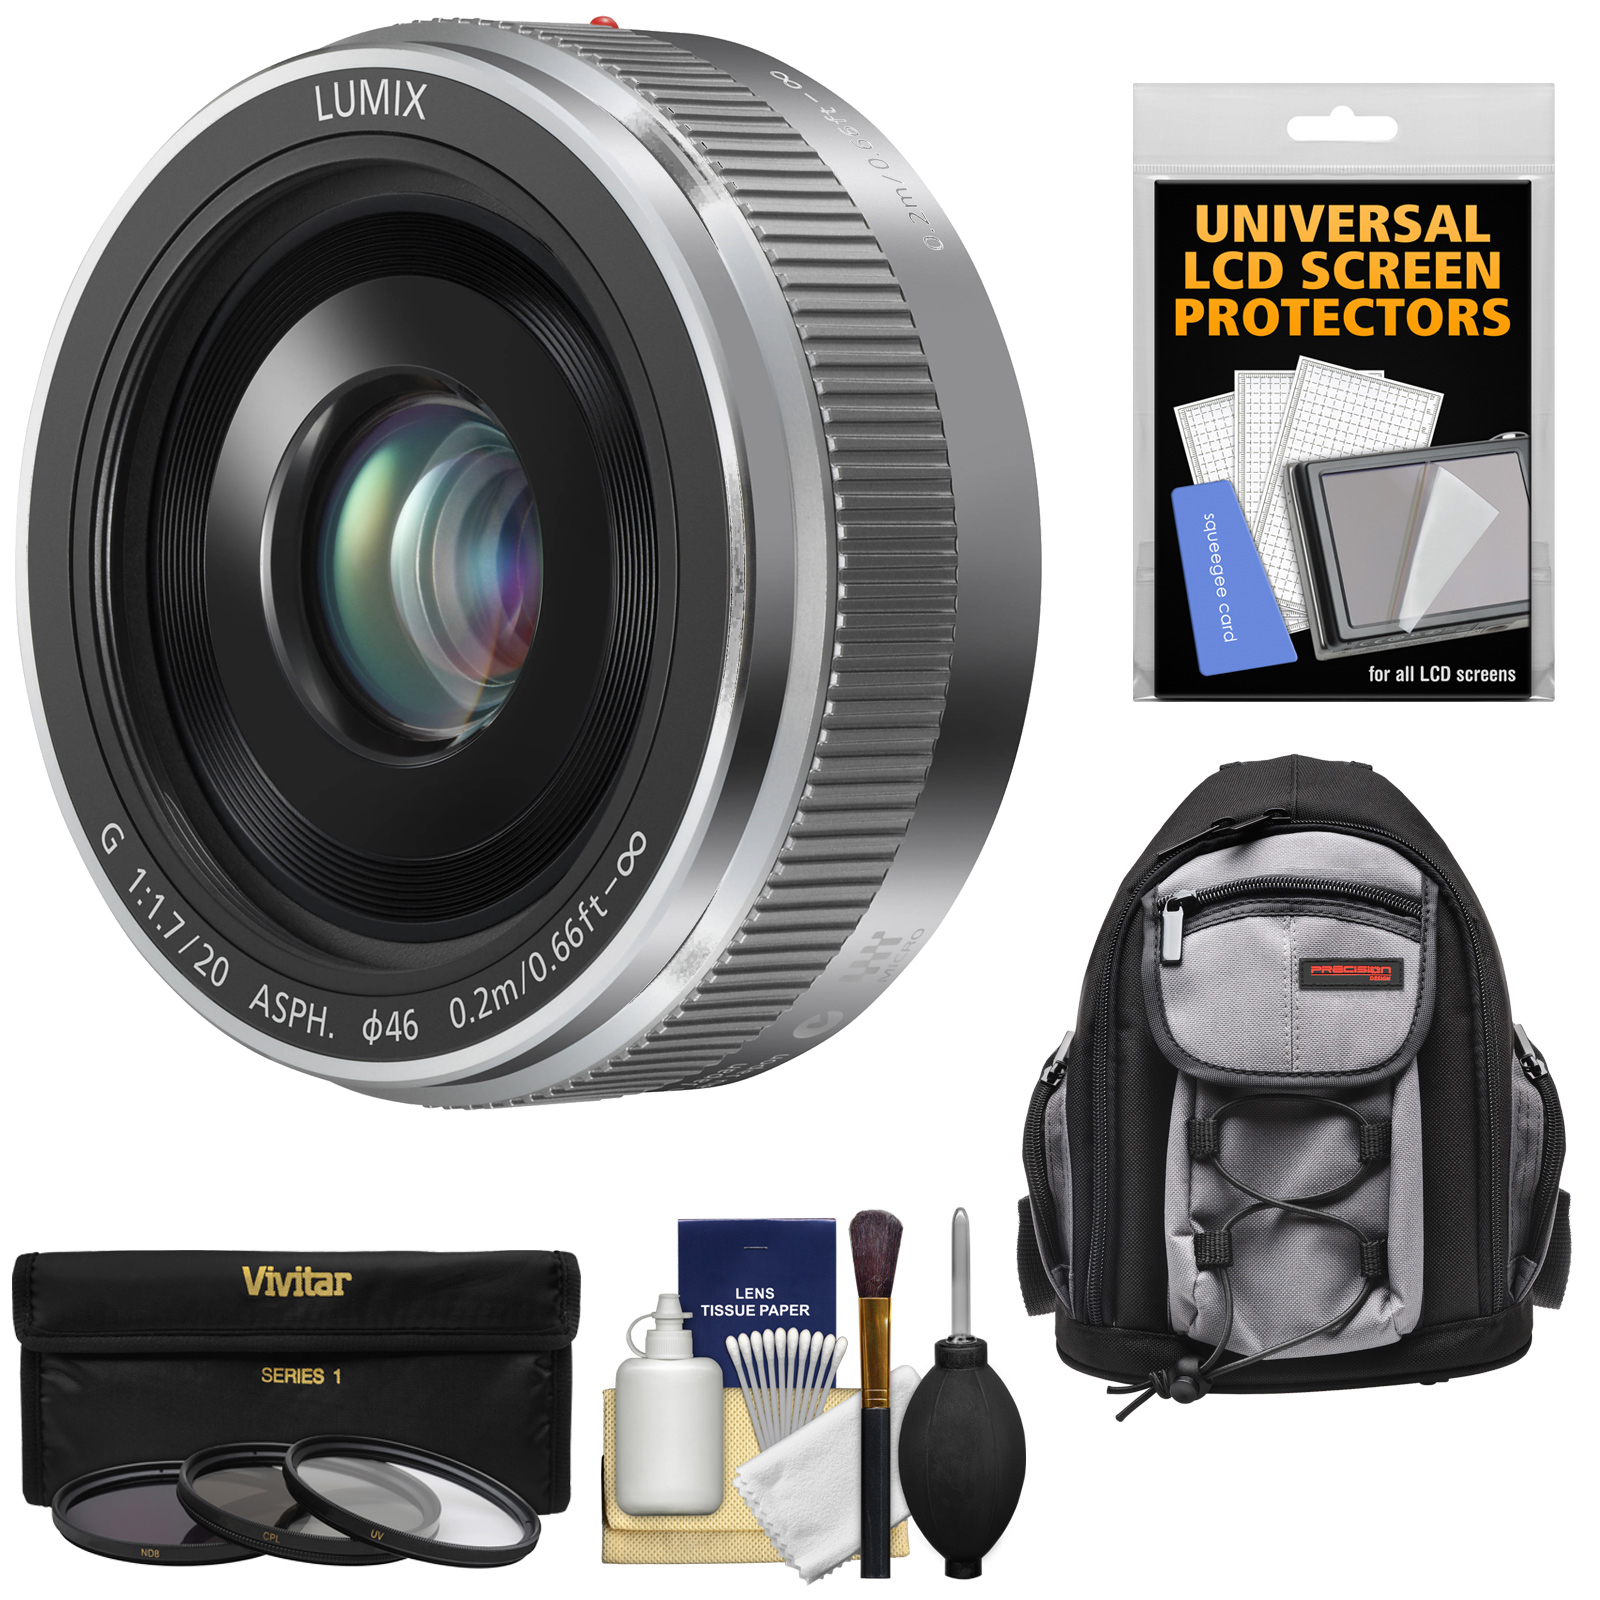 Panasonic Lumix G Vario 20mm f/1.7 II ASPH Lens (Silver) with 3 Filters + Backpack + Kit for G6, G7, GF7, GH3, GH4, GM1, GM5, GX7, GX8 Cameras